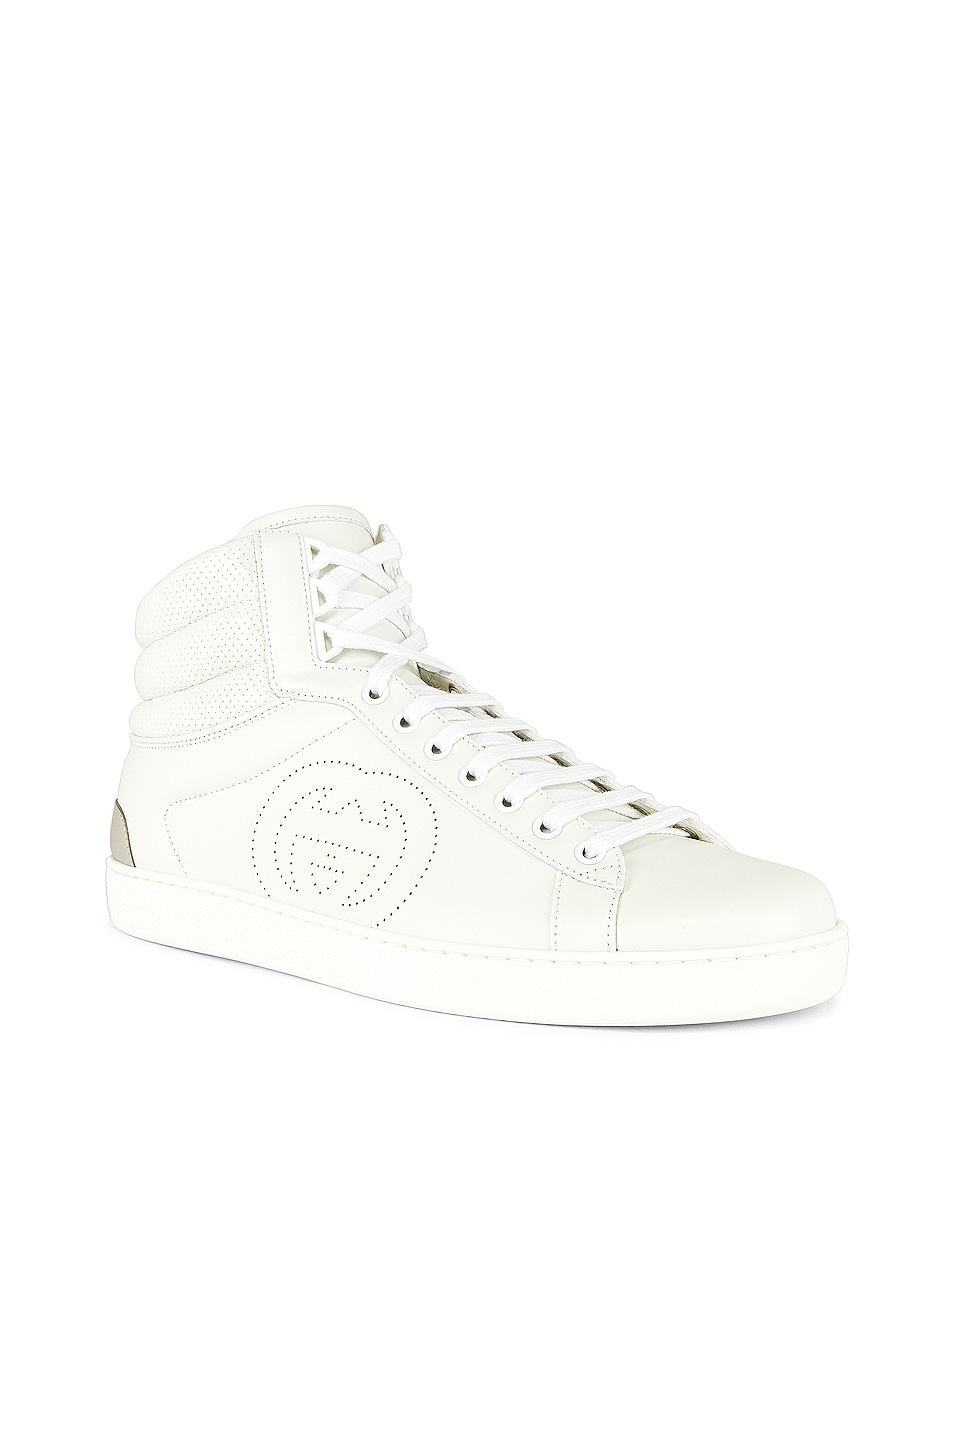 Image 1 of Gucci New Ace High Top Sneaker in White & Grey